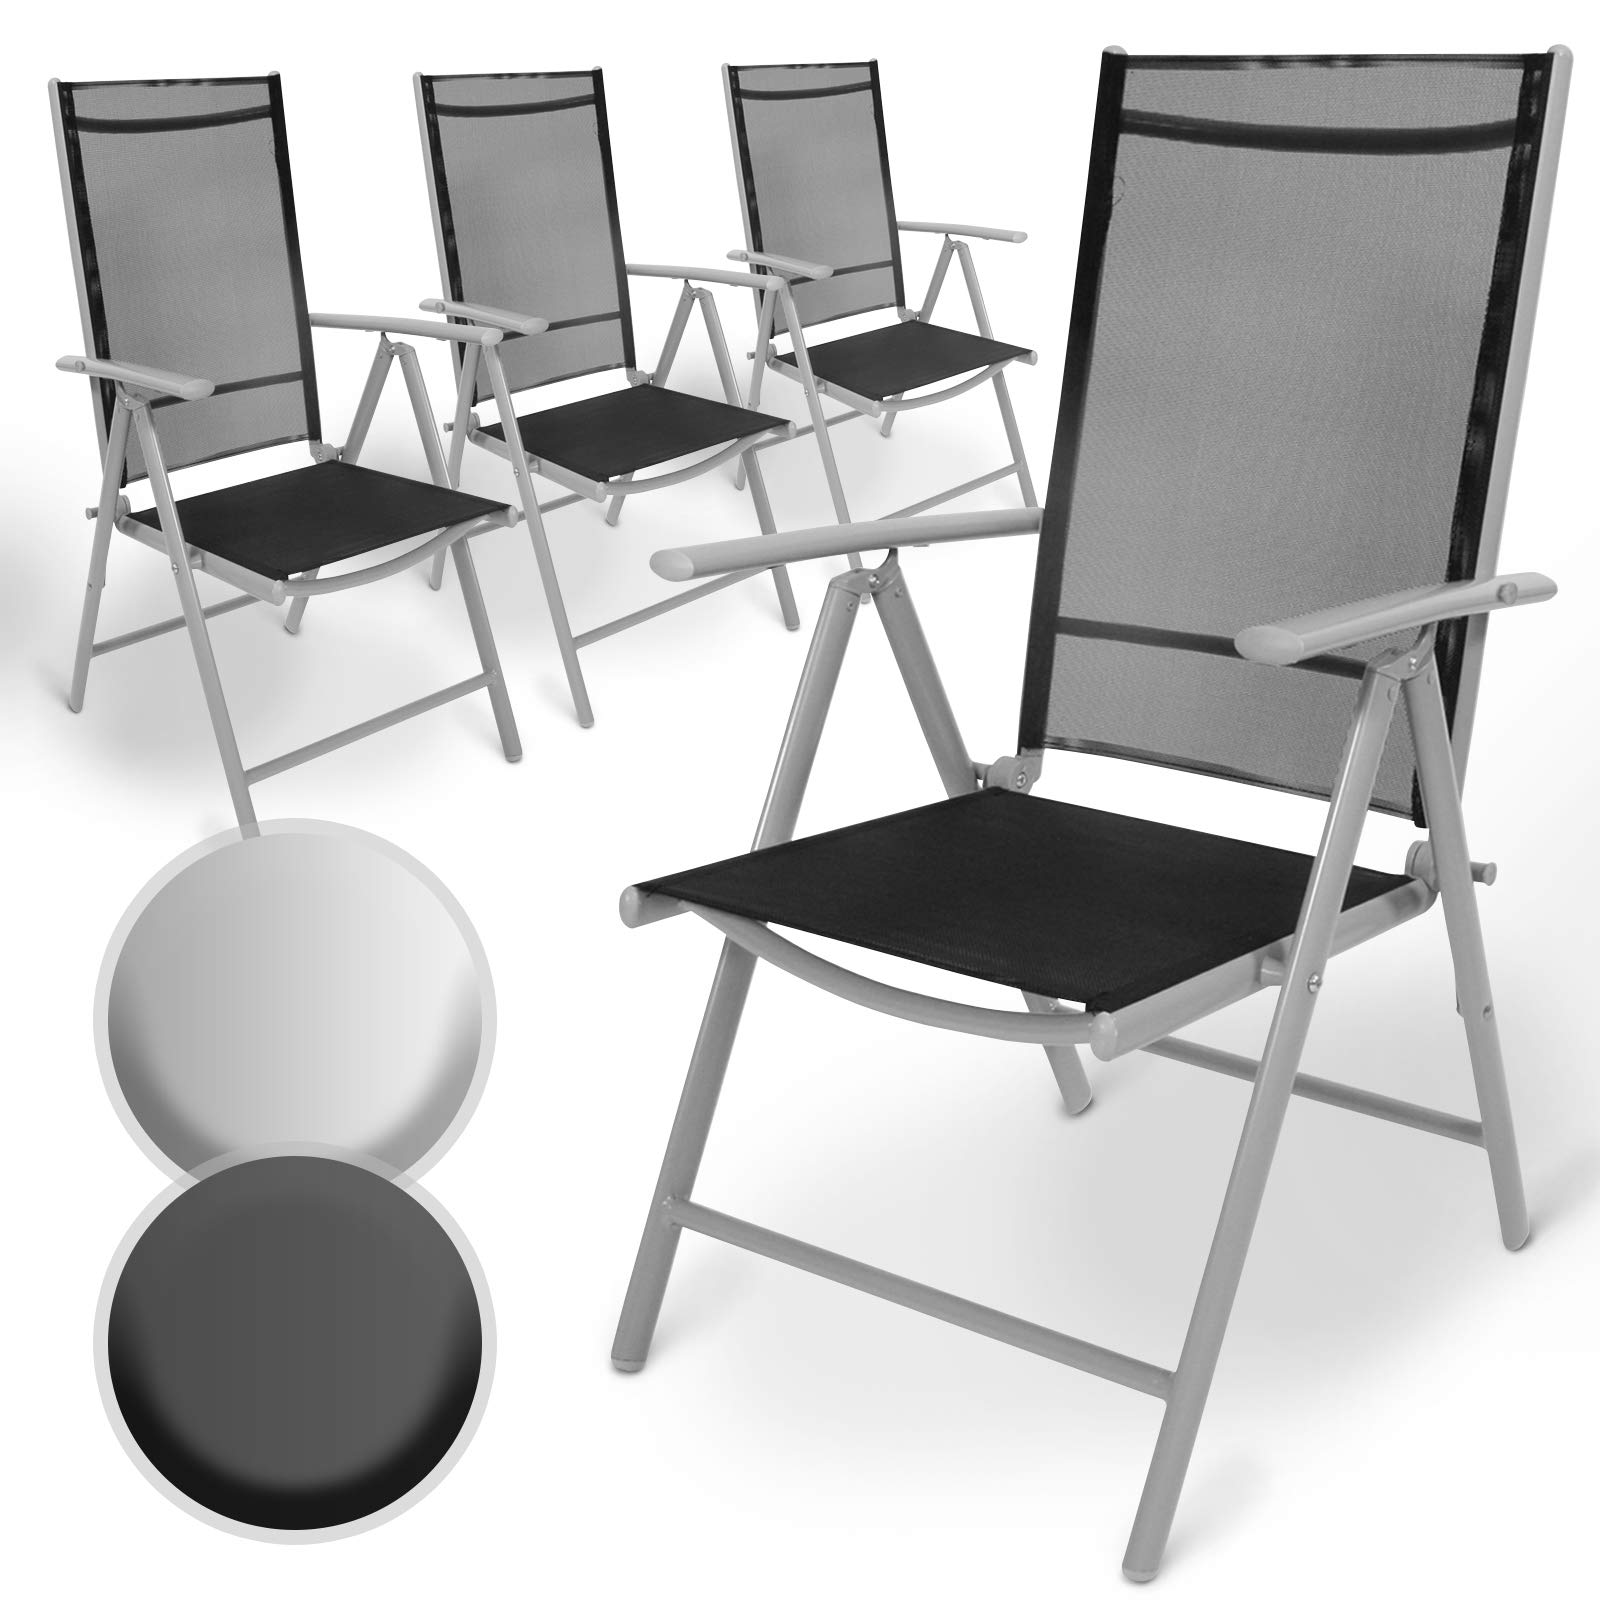 MIADOMODO Aluminium Folding Garden Chairs  with Armrests, High Backrest  Adjustable in 8 Positions, 8x8 Thread  Recliner Chair Outdoor Camping